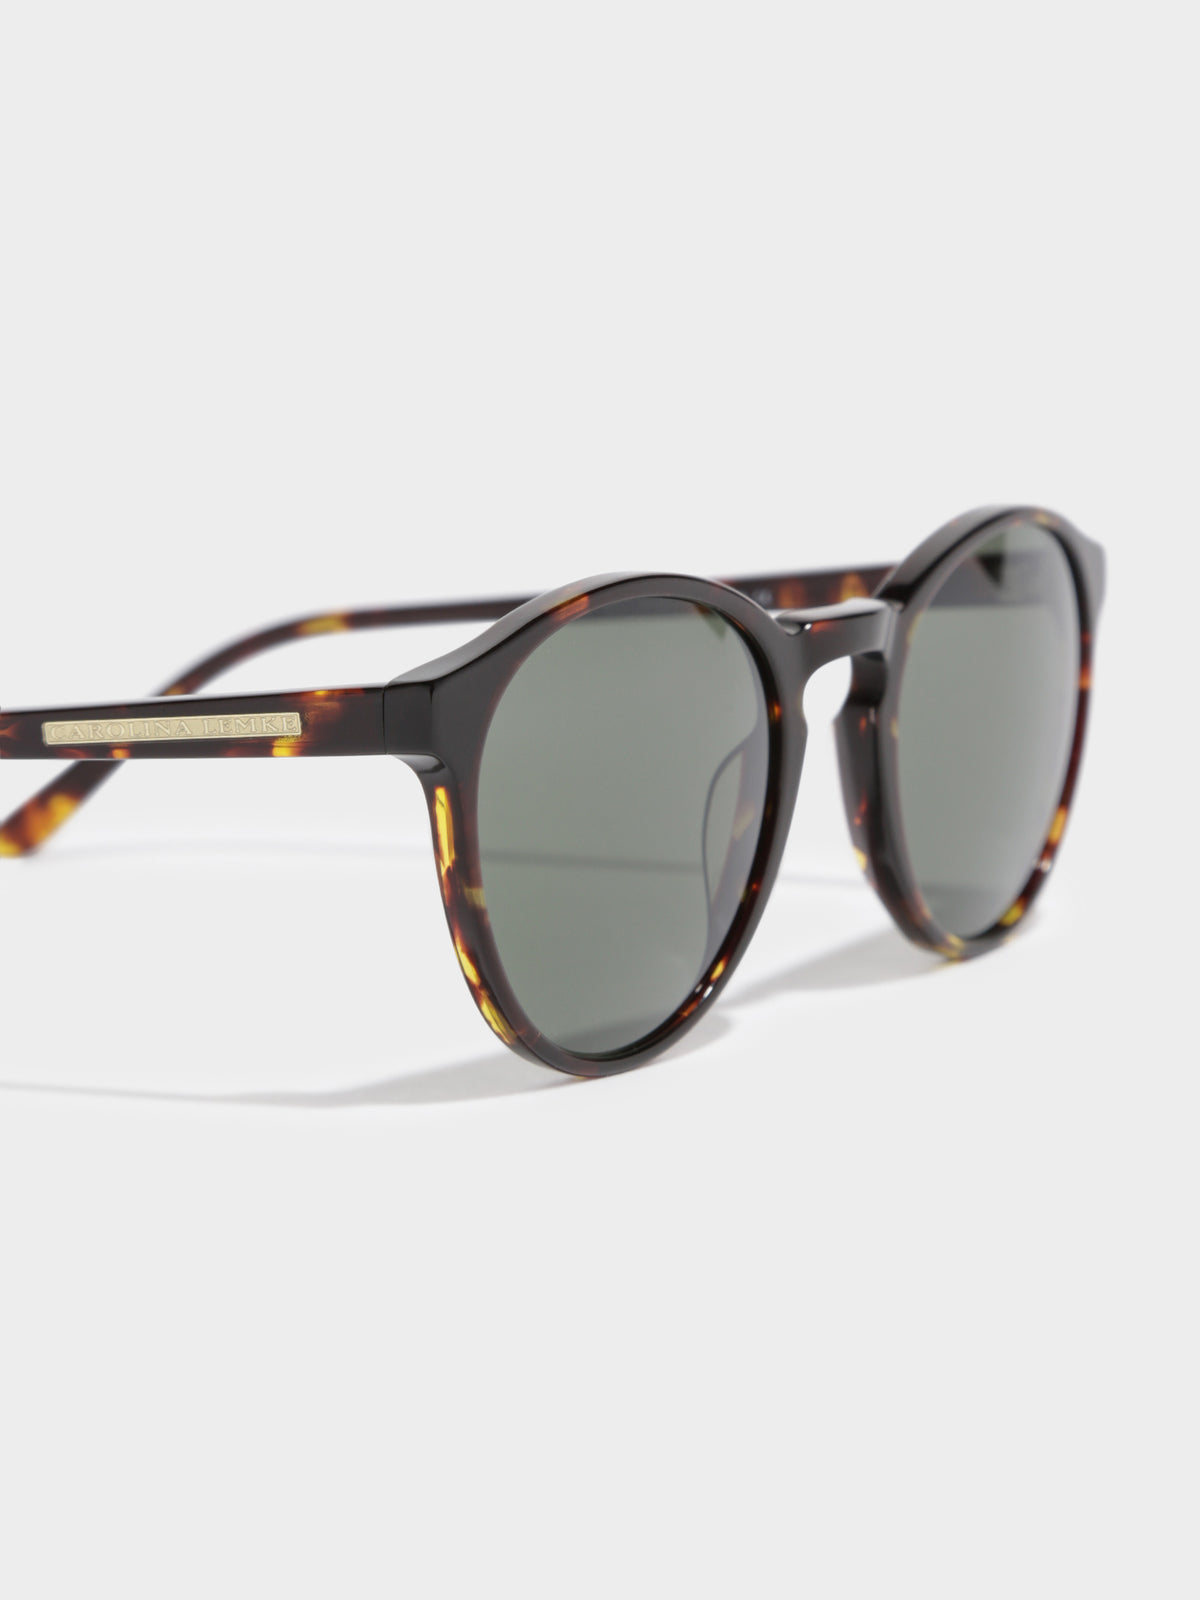 Paco CL7644 Sunglasses in Tortoise Shell